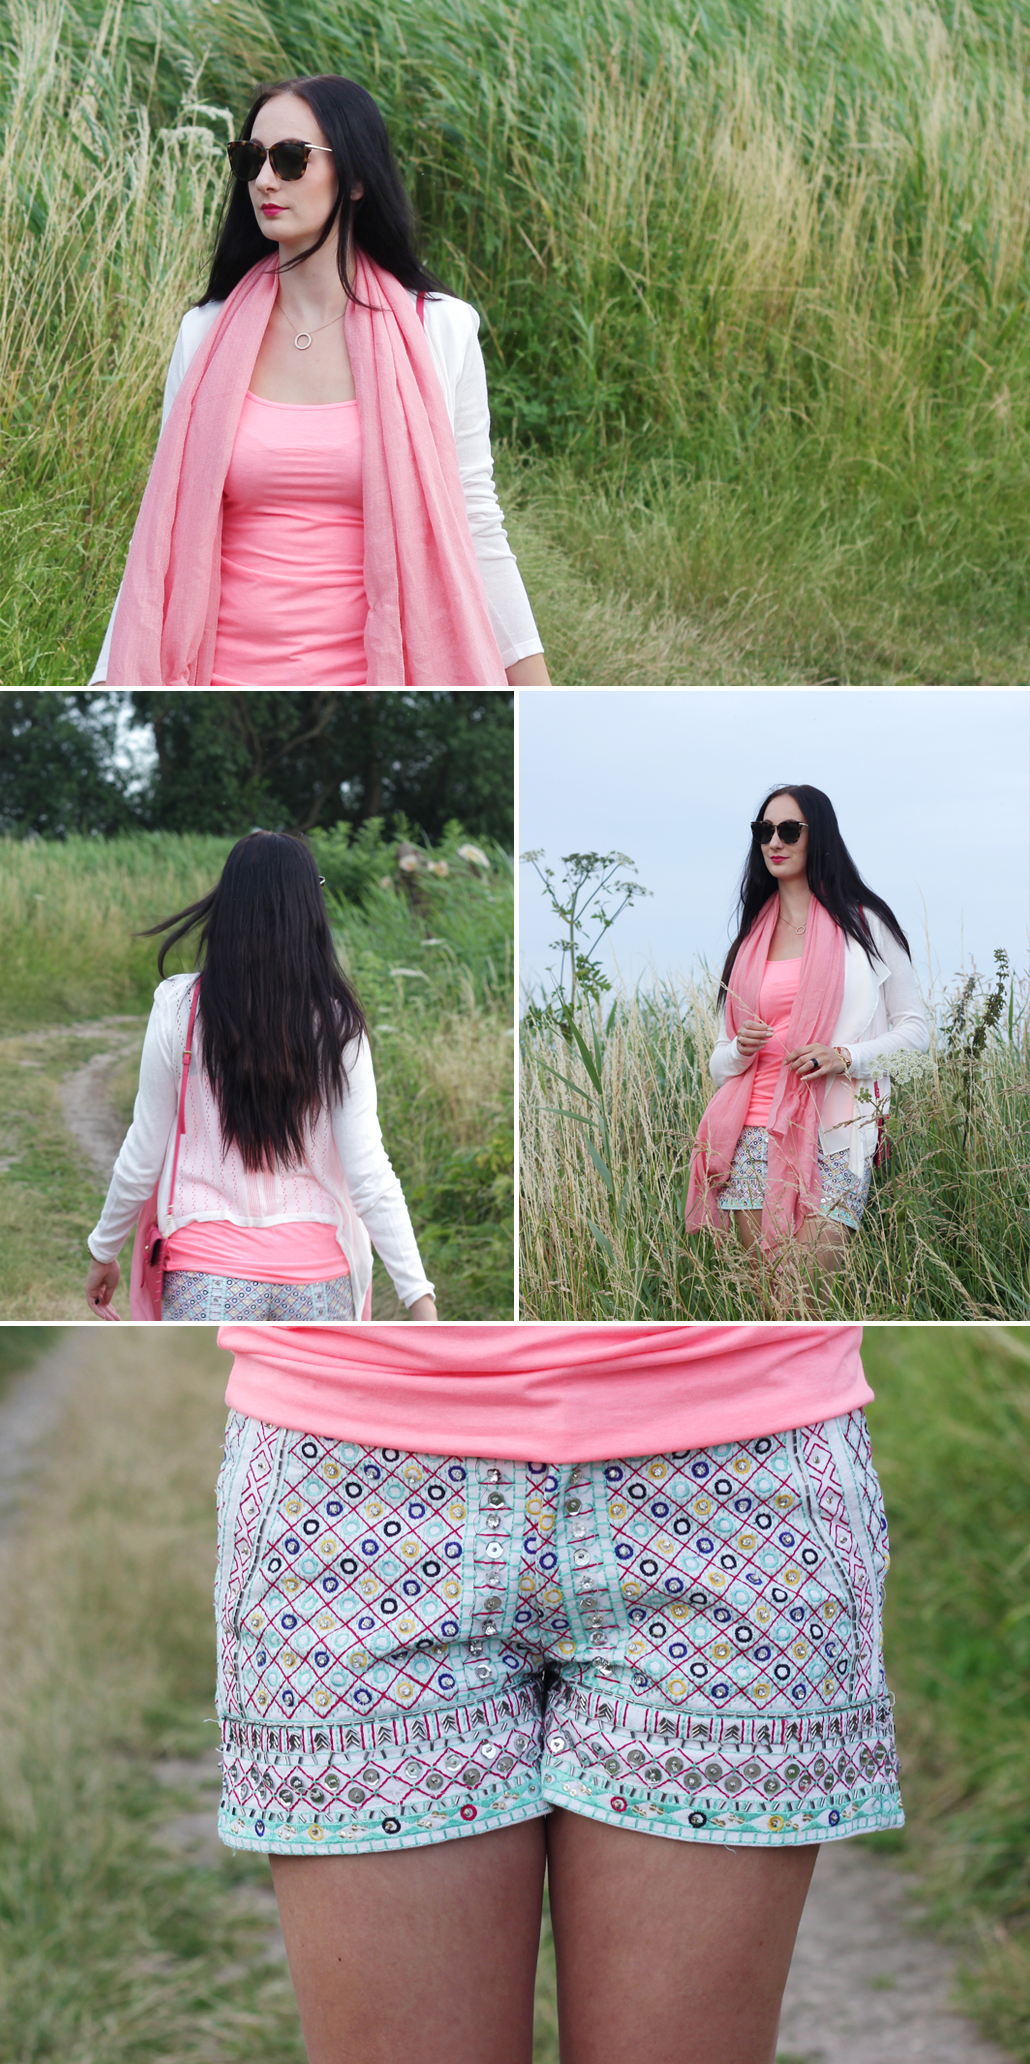 mode rood outfit recap 2015 fashion i love fashion bloggers lifestyle by linda